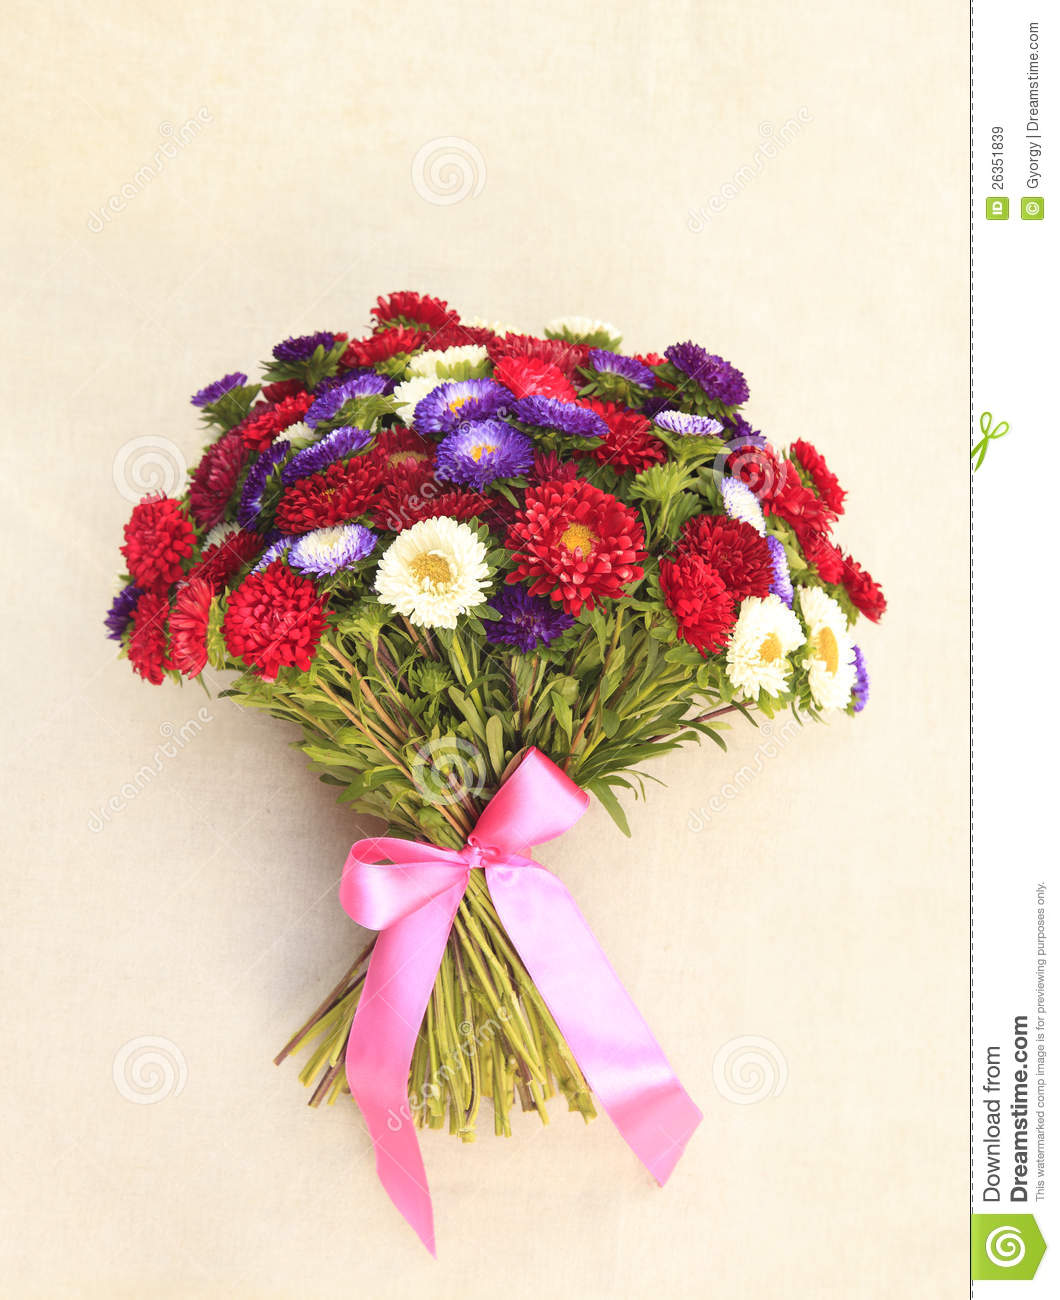 Flower bouquet stock image image of nature flower bouquet 26351839 flower bouquet izmirmasajfo